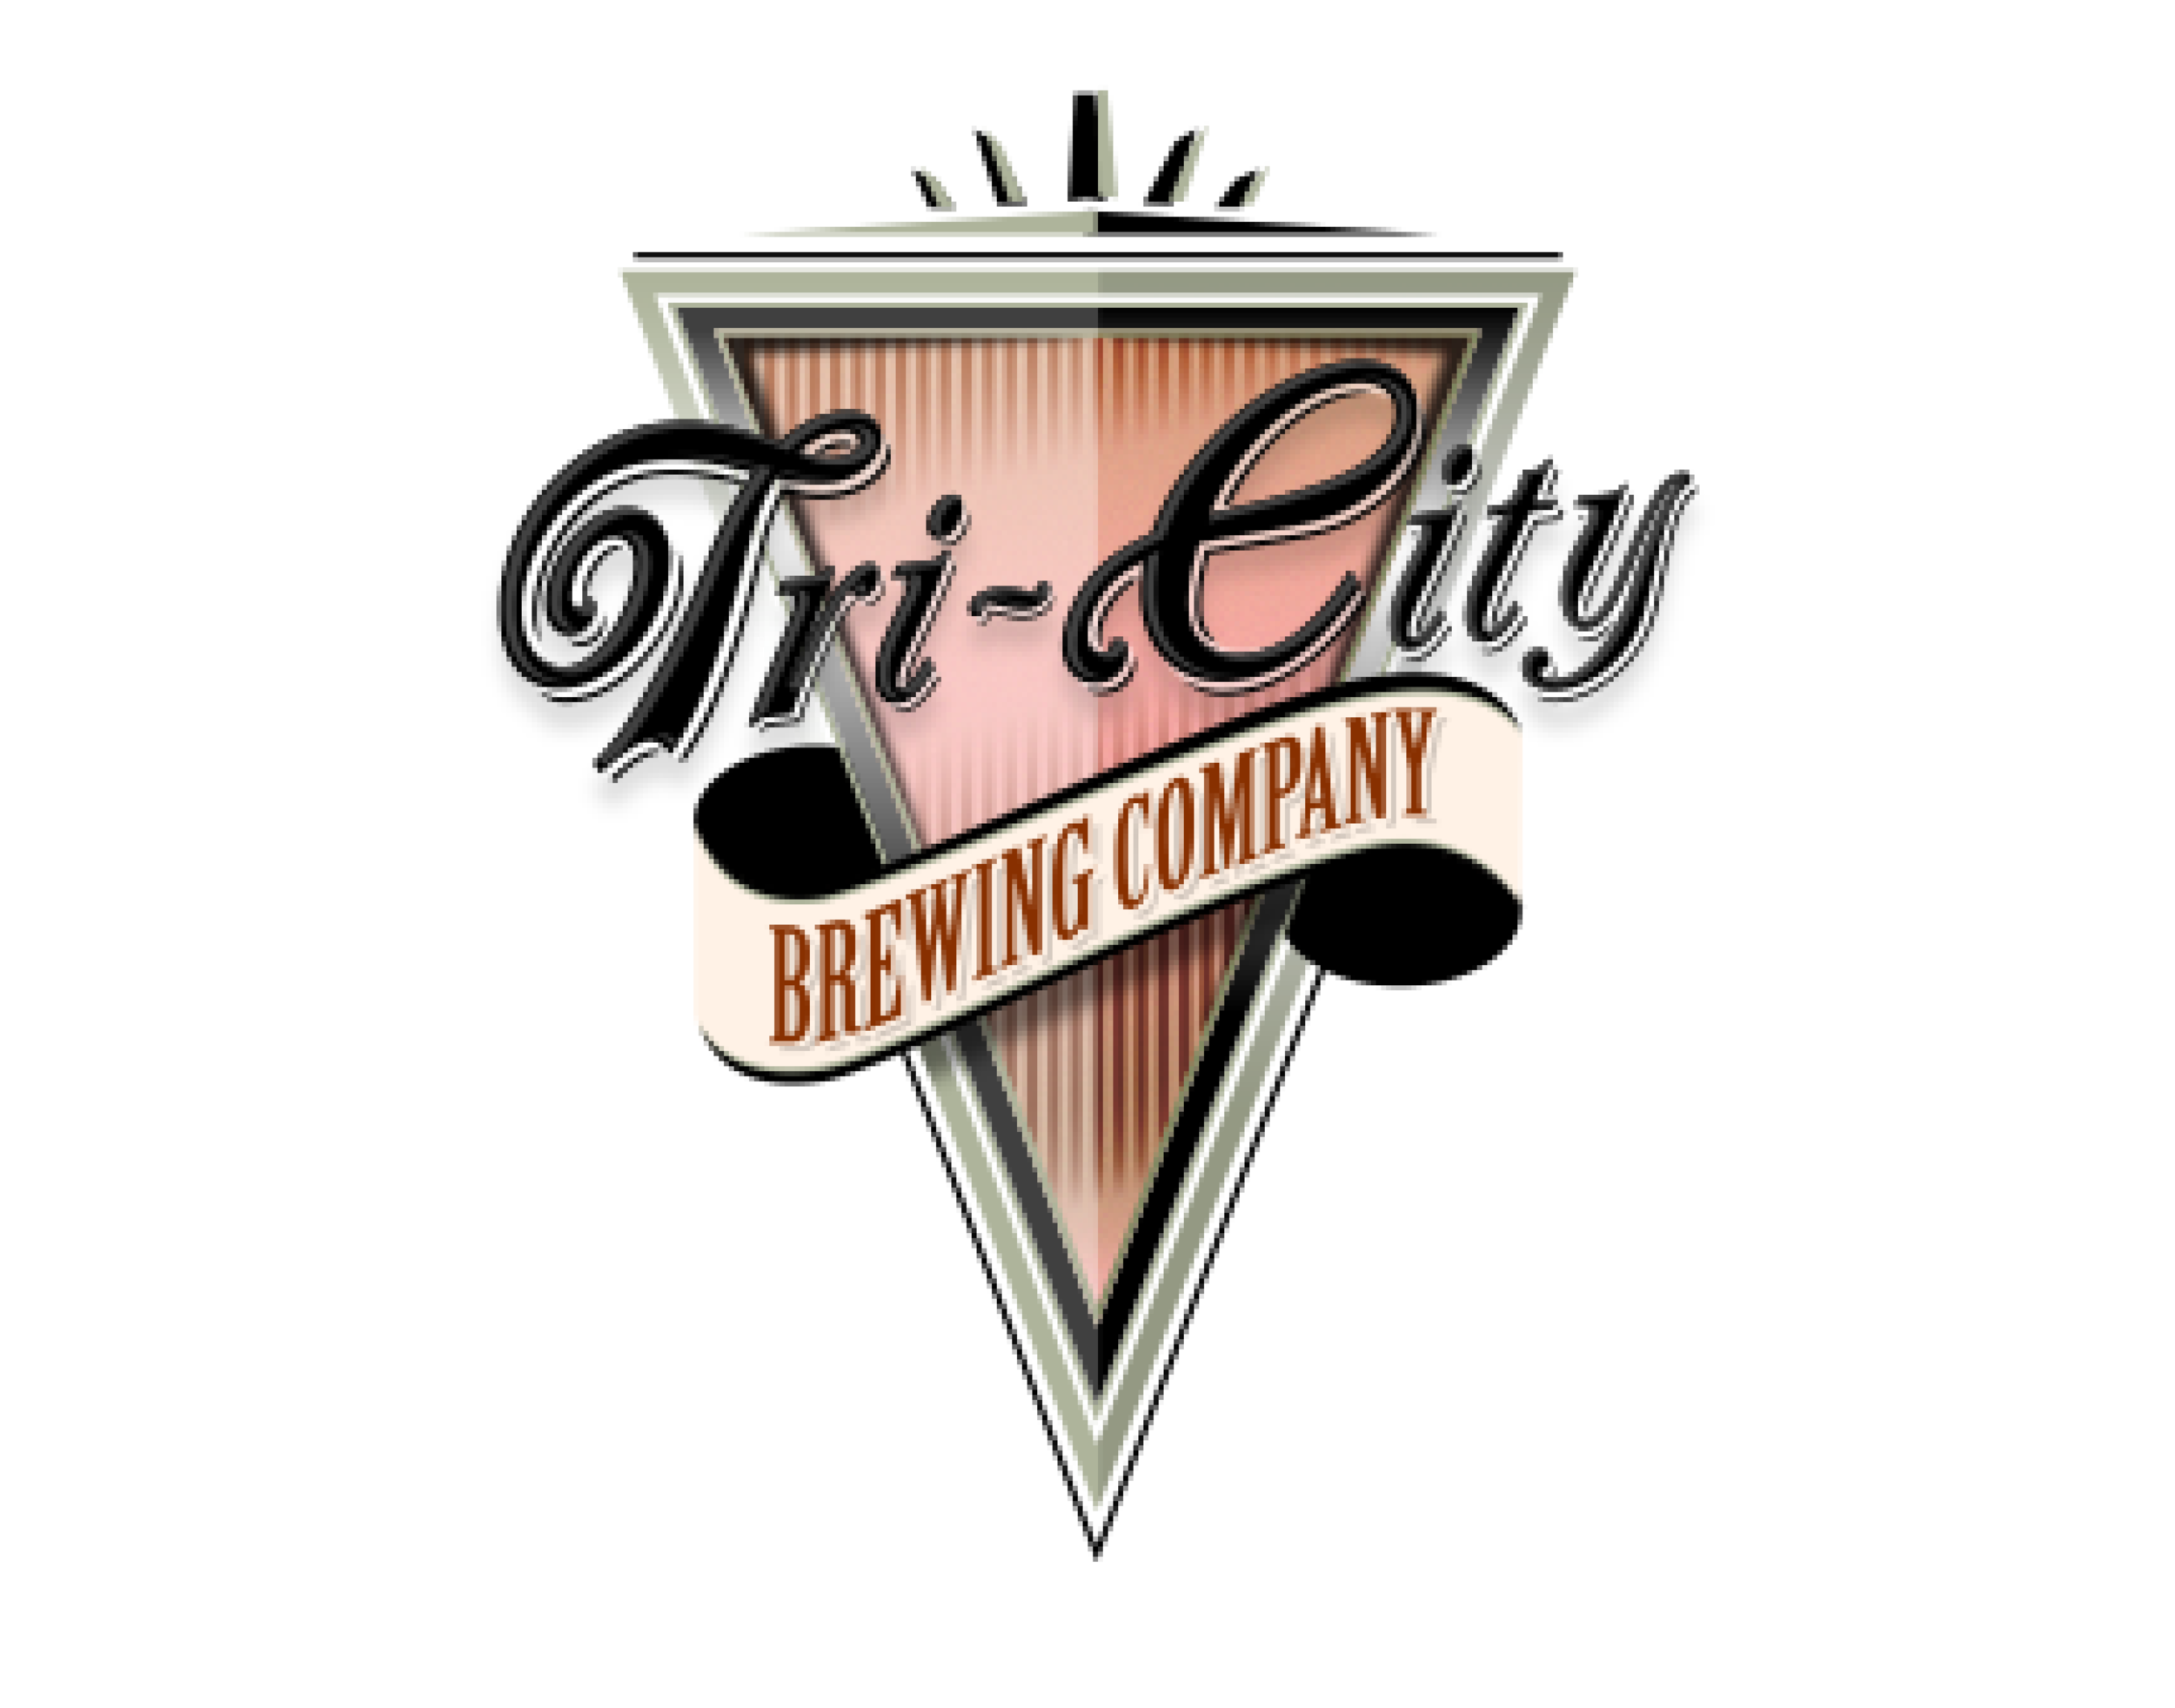 Tri-City Brewing Company logo. Links to Tri-City Brewing Company website.